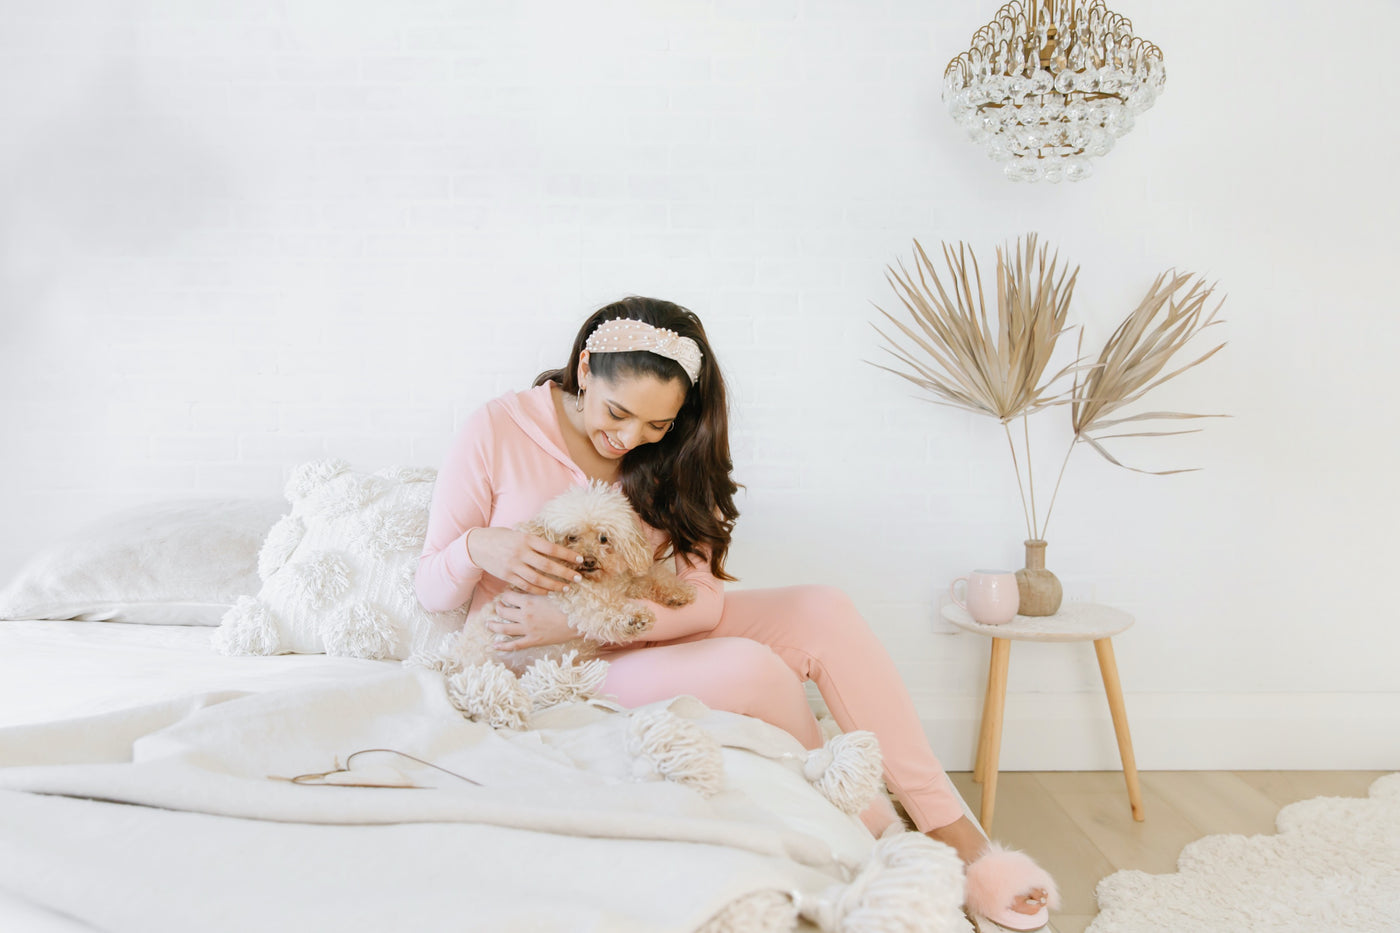 lady wearing pink jillian harris smash + tess romper with dog on bed